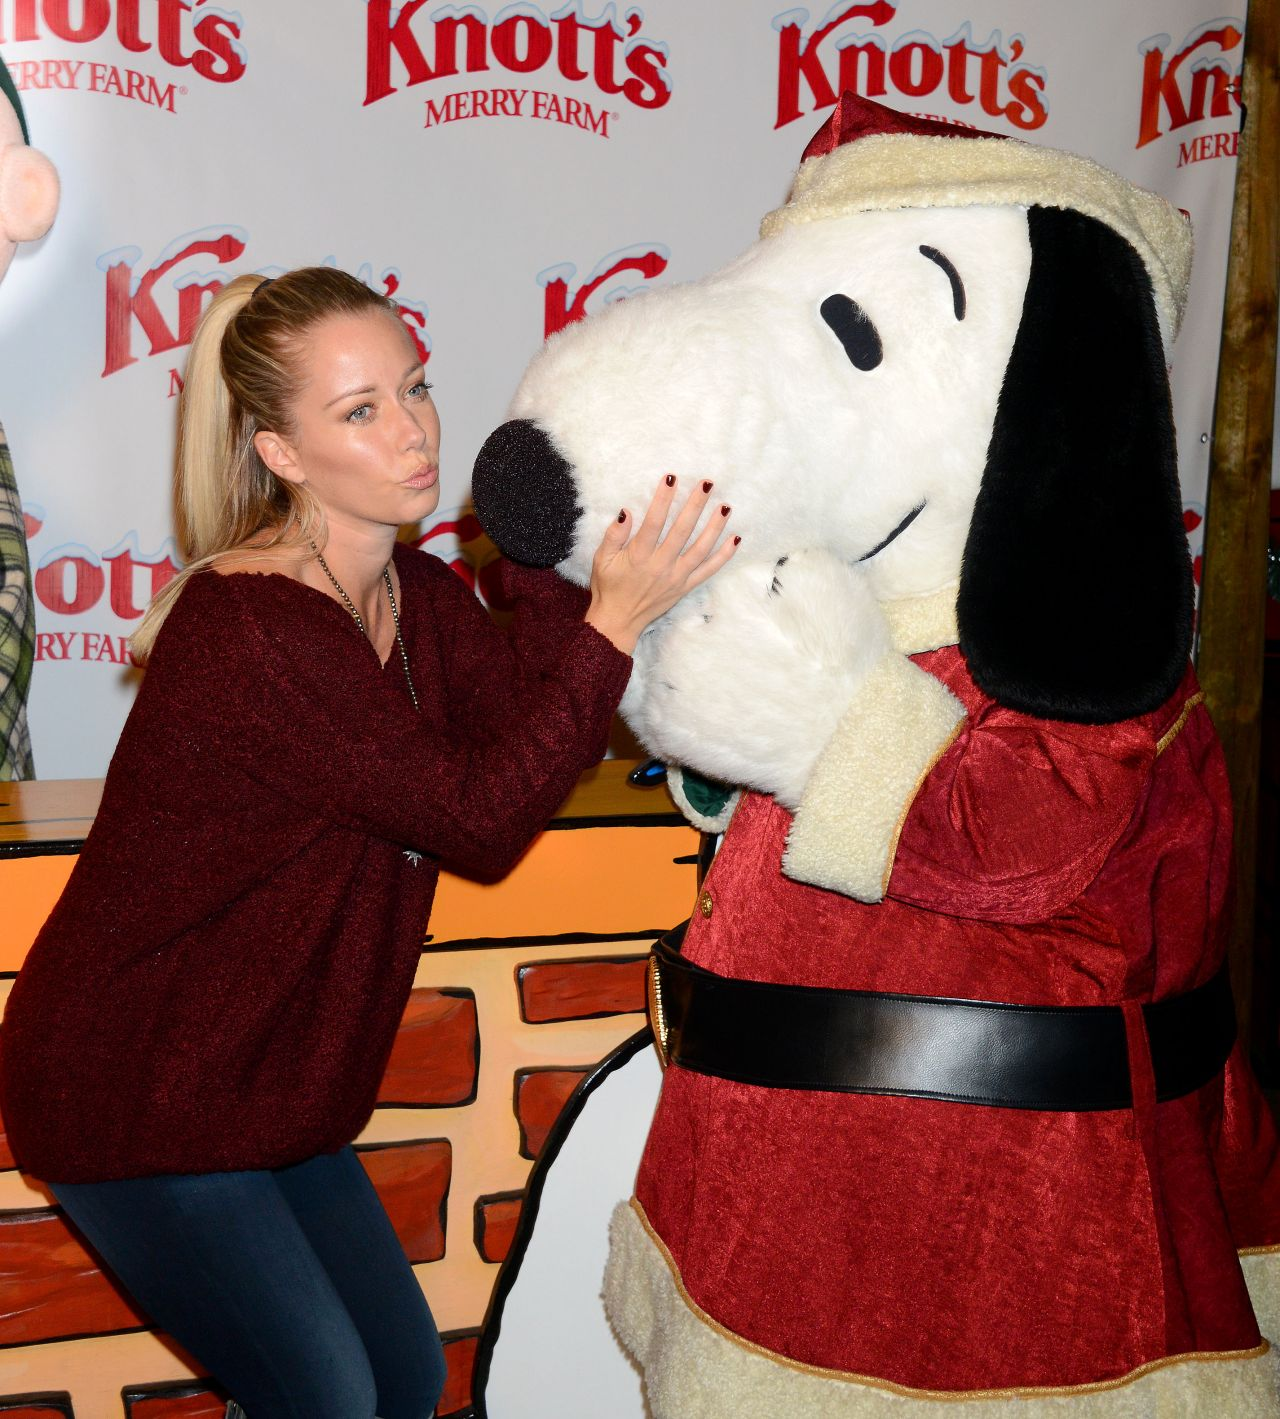 Kendra wilkinson knotts merry farm countdown to christmas kendra wilkinson knott aloadofball Image collections